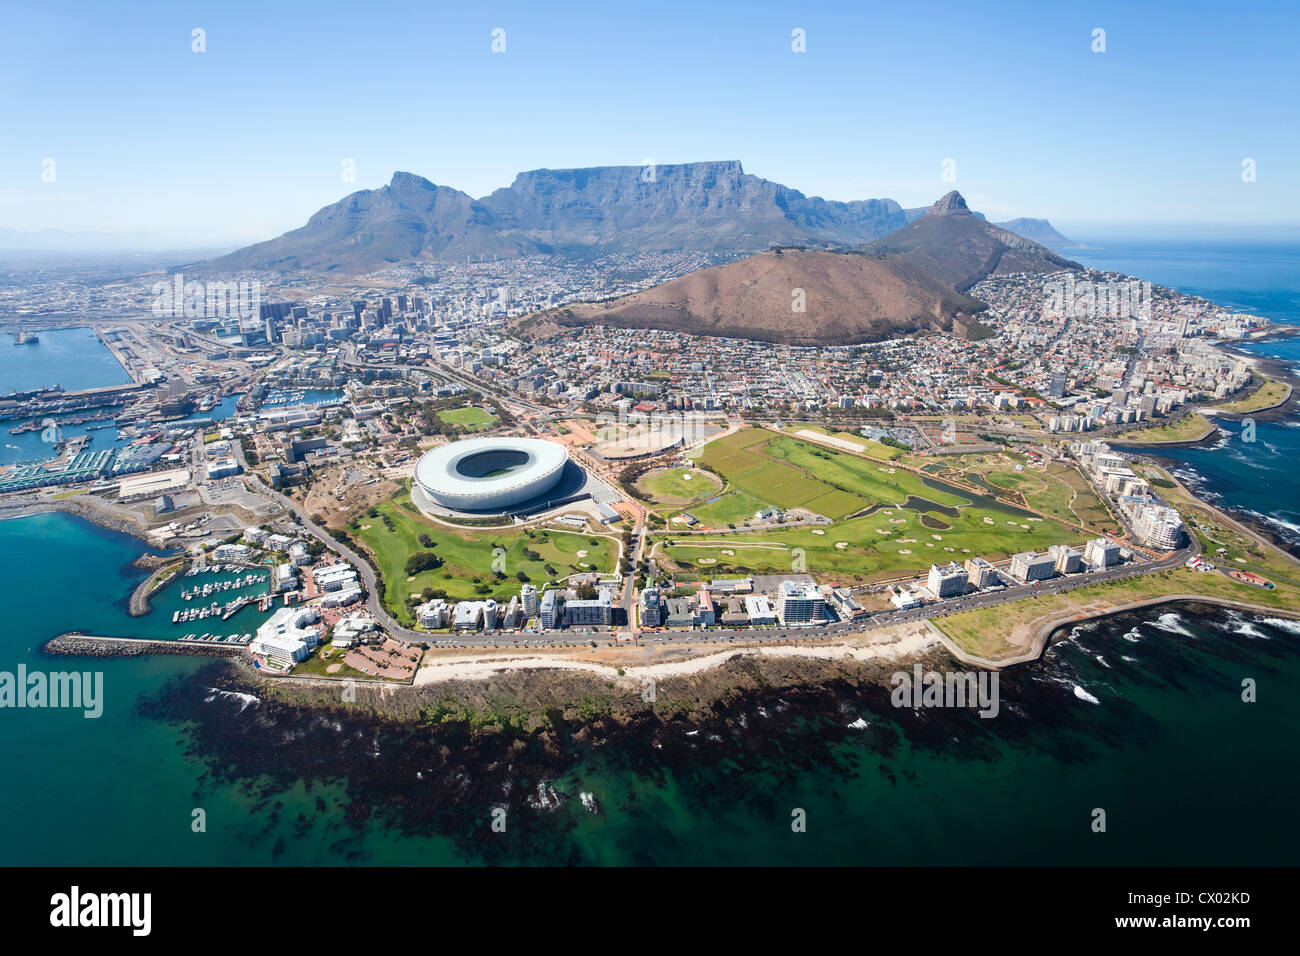 overall aerial view of Cape Town, South Africa - Stock Image